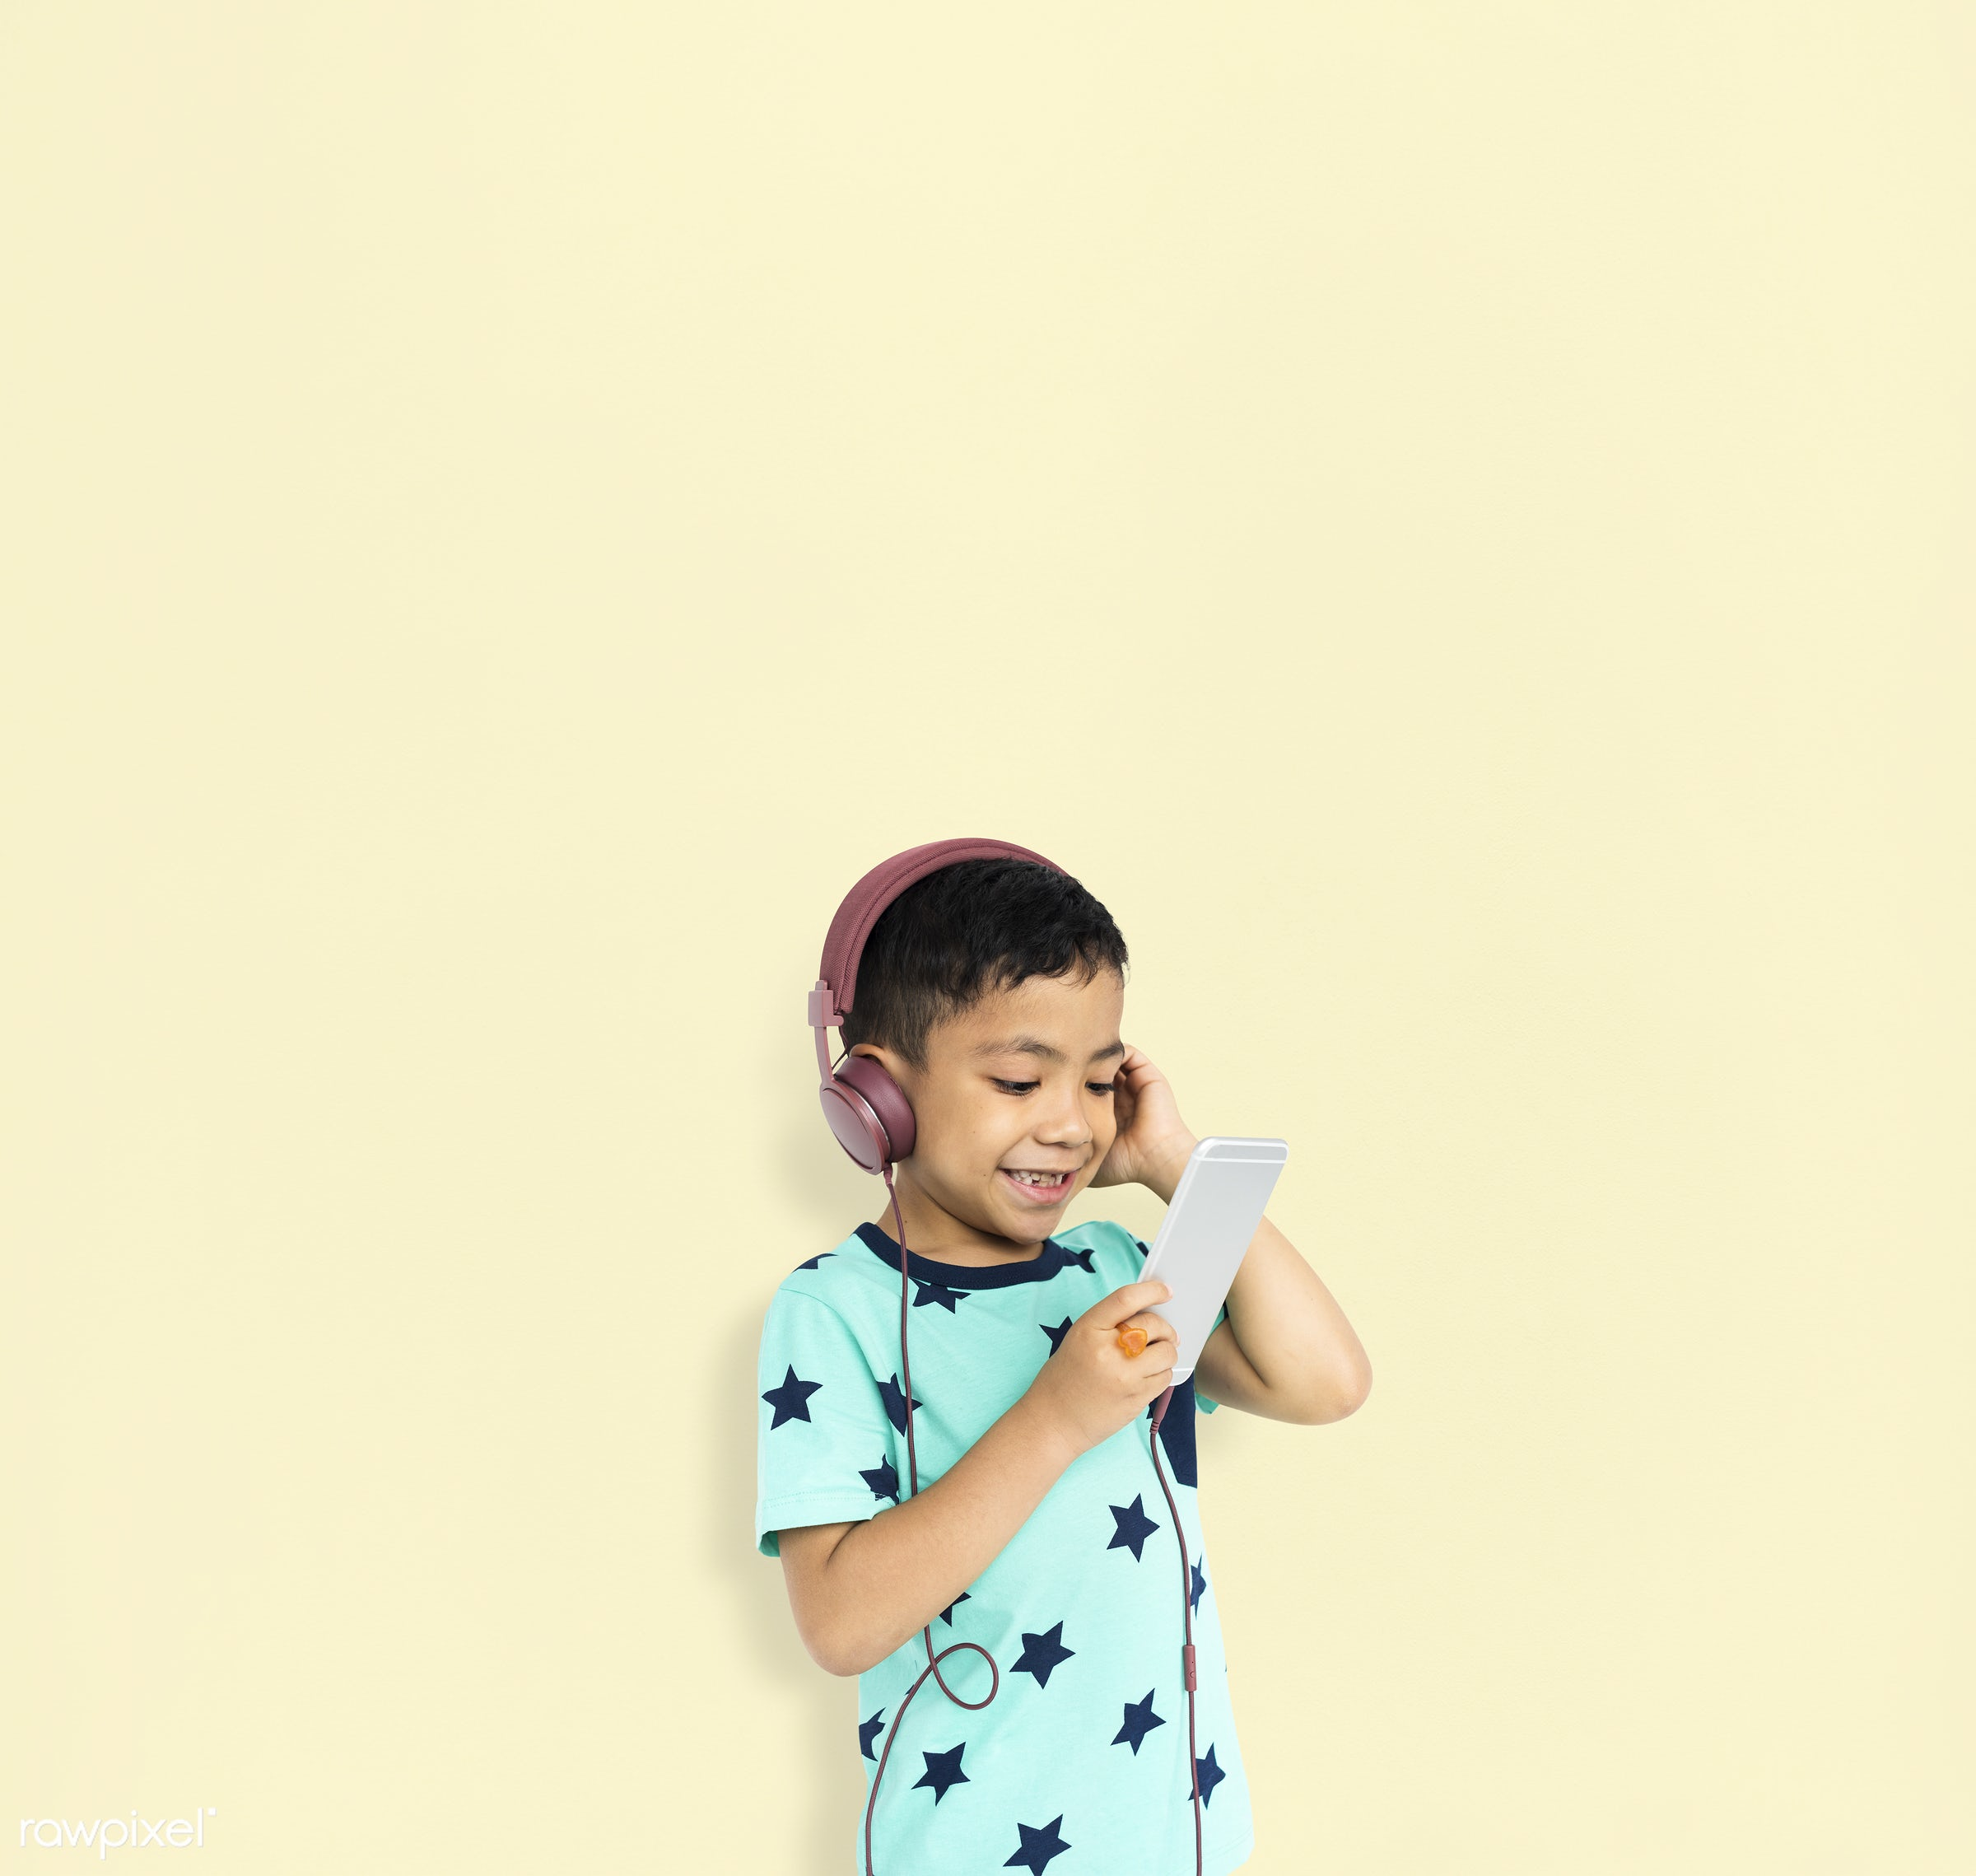 studio, expression, person, technology, little, recreation, people, kid, friends, solo, friendship, childhood, cheerful,...